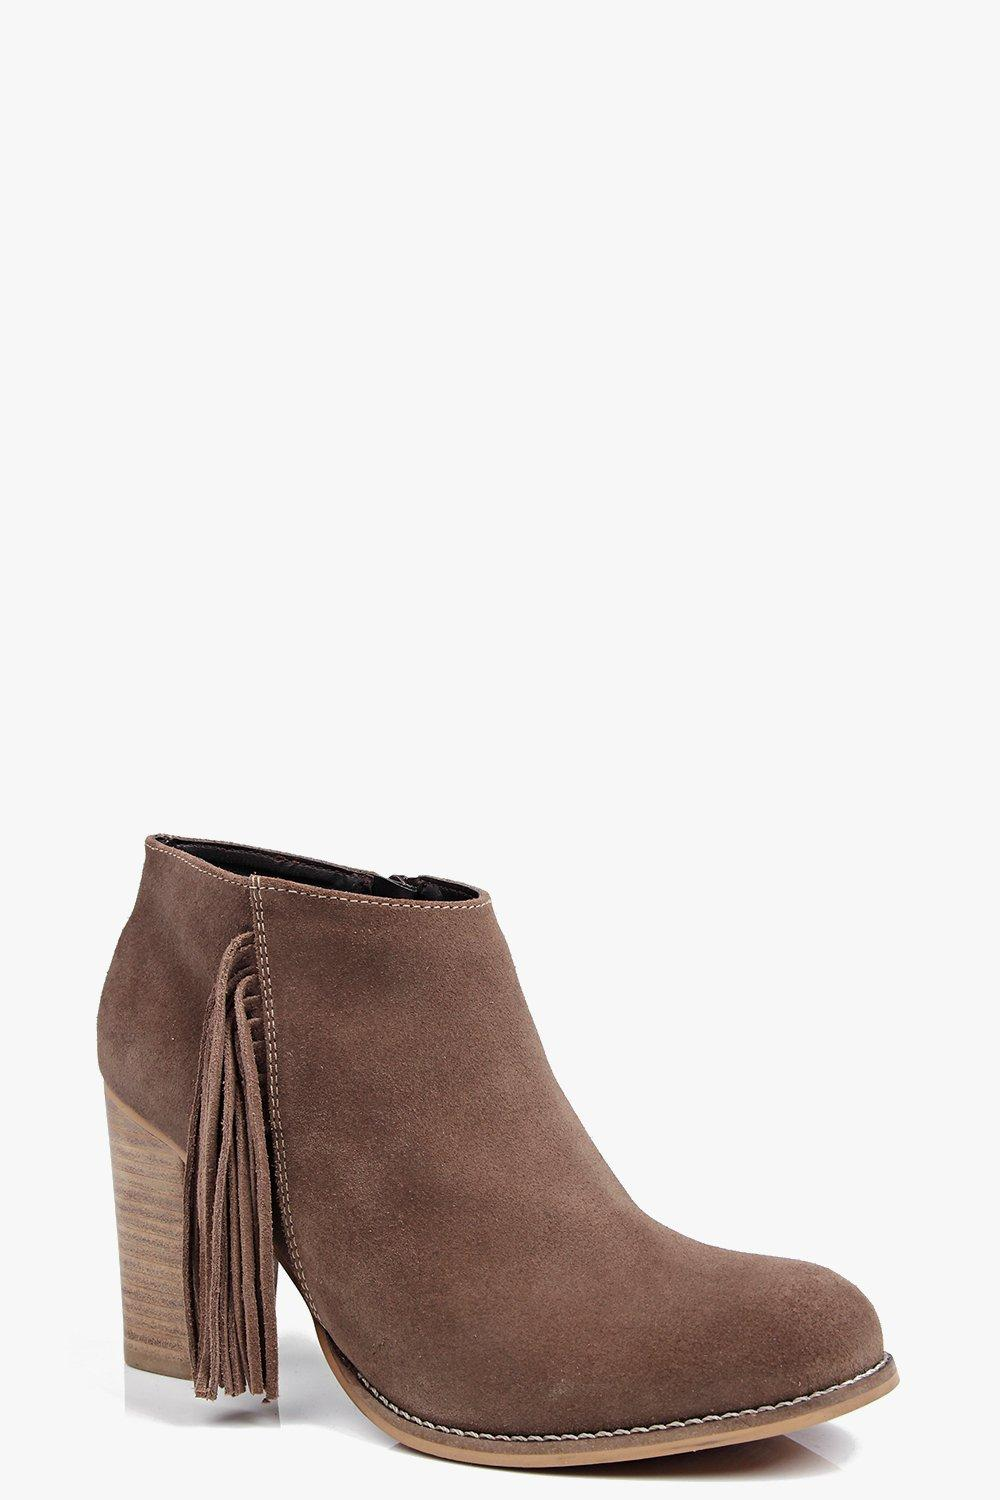 Boutique Freya Fringe Trim Suede Ankle Boot